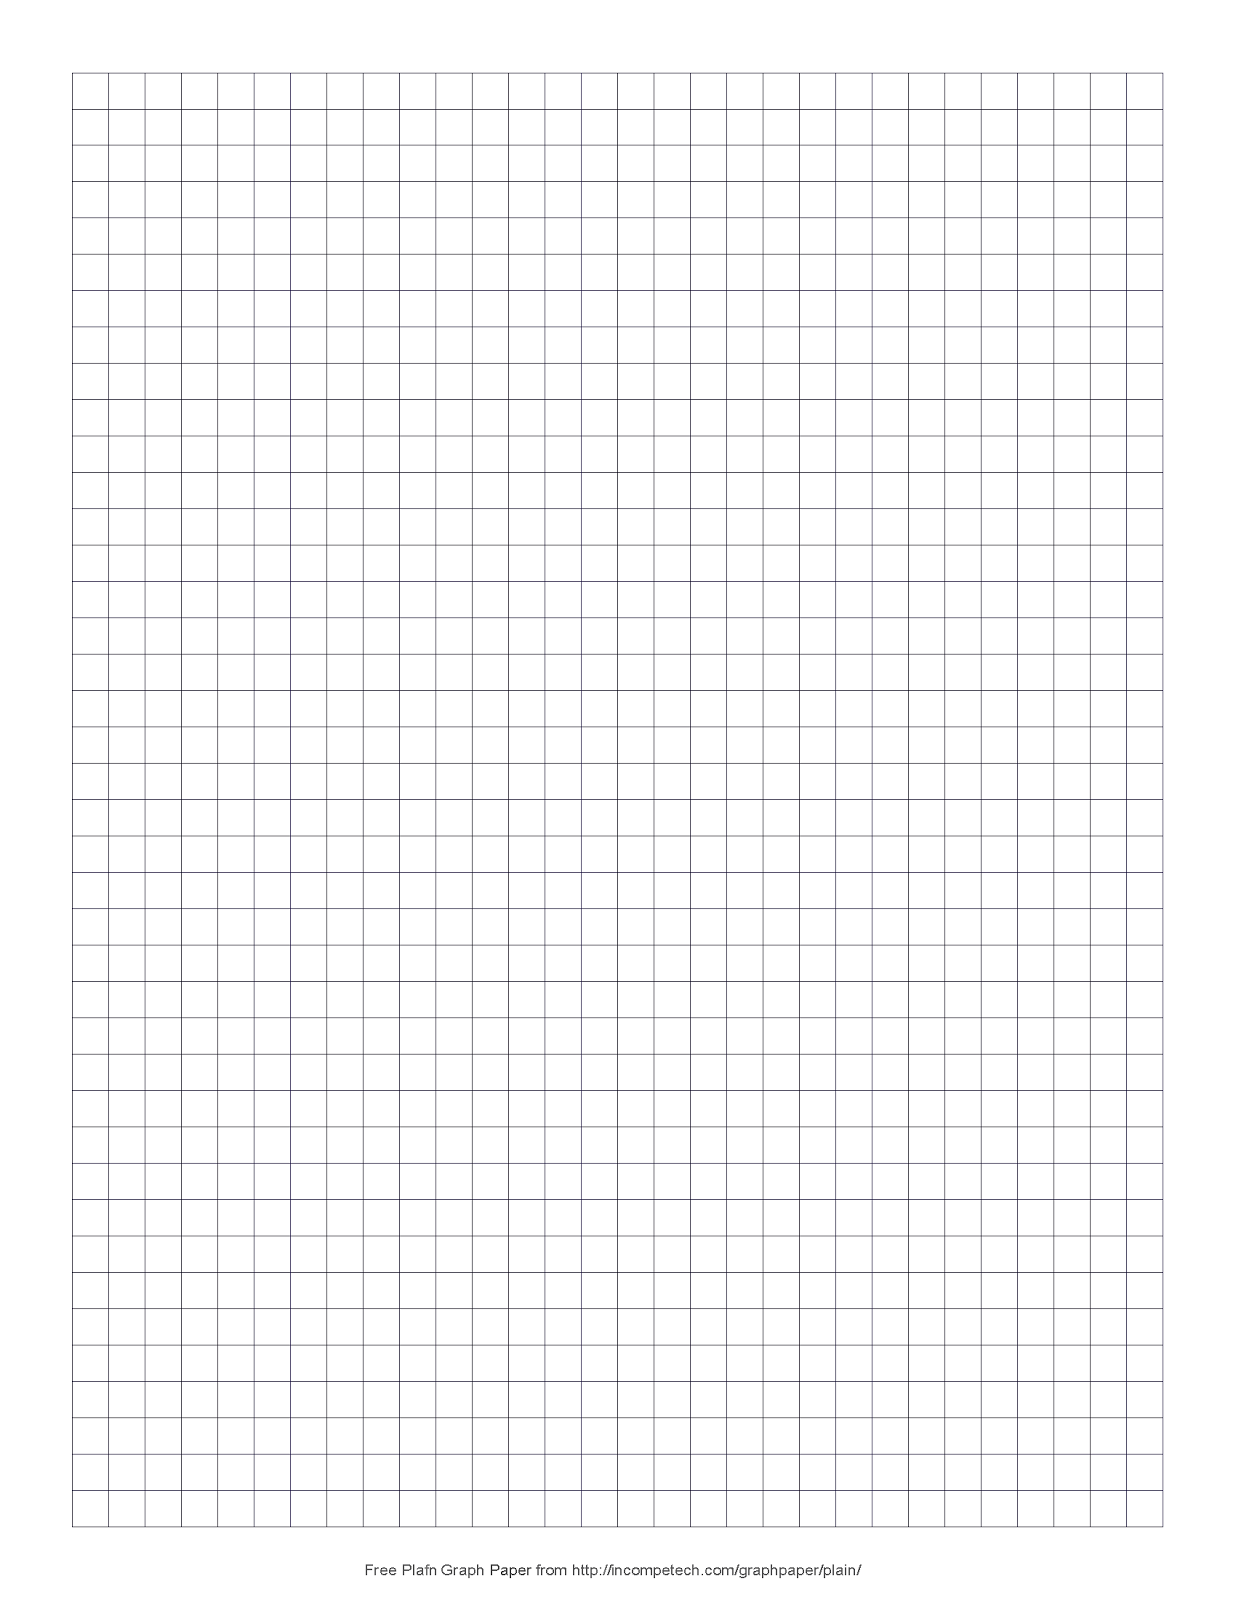 Chapter 17 CPO textbook graph paper and summary template – Chapter Summary Template